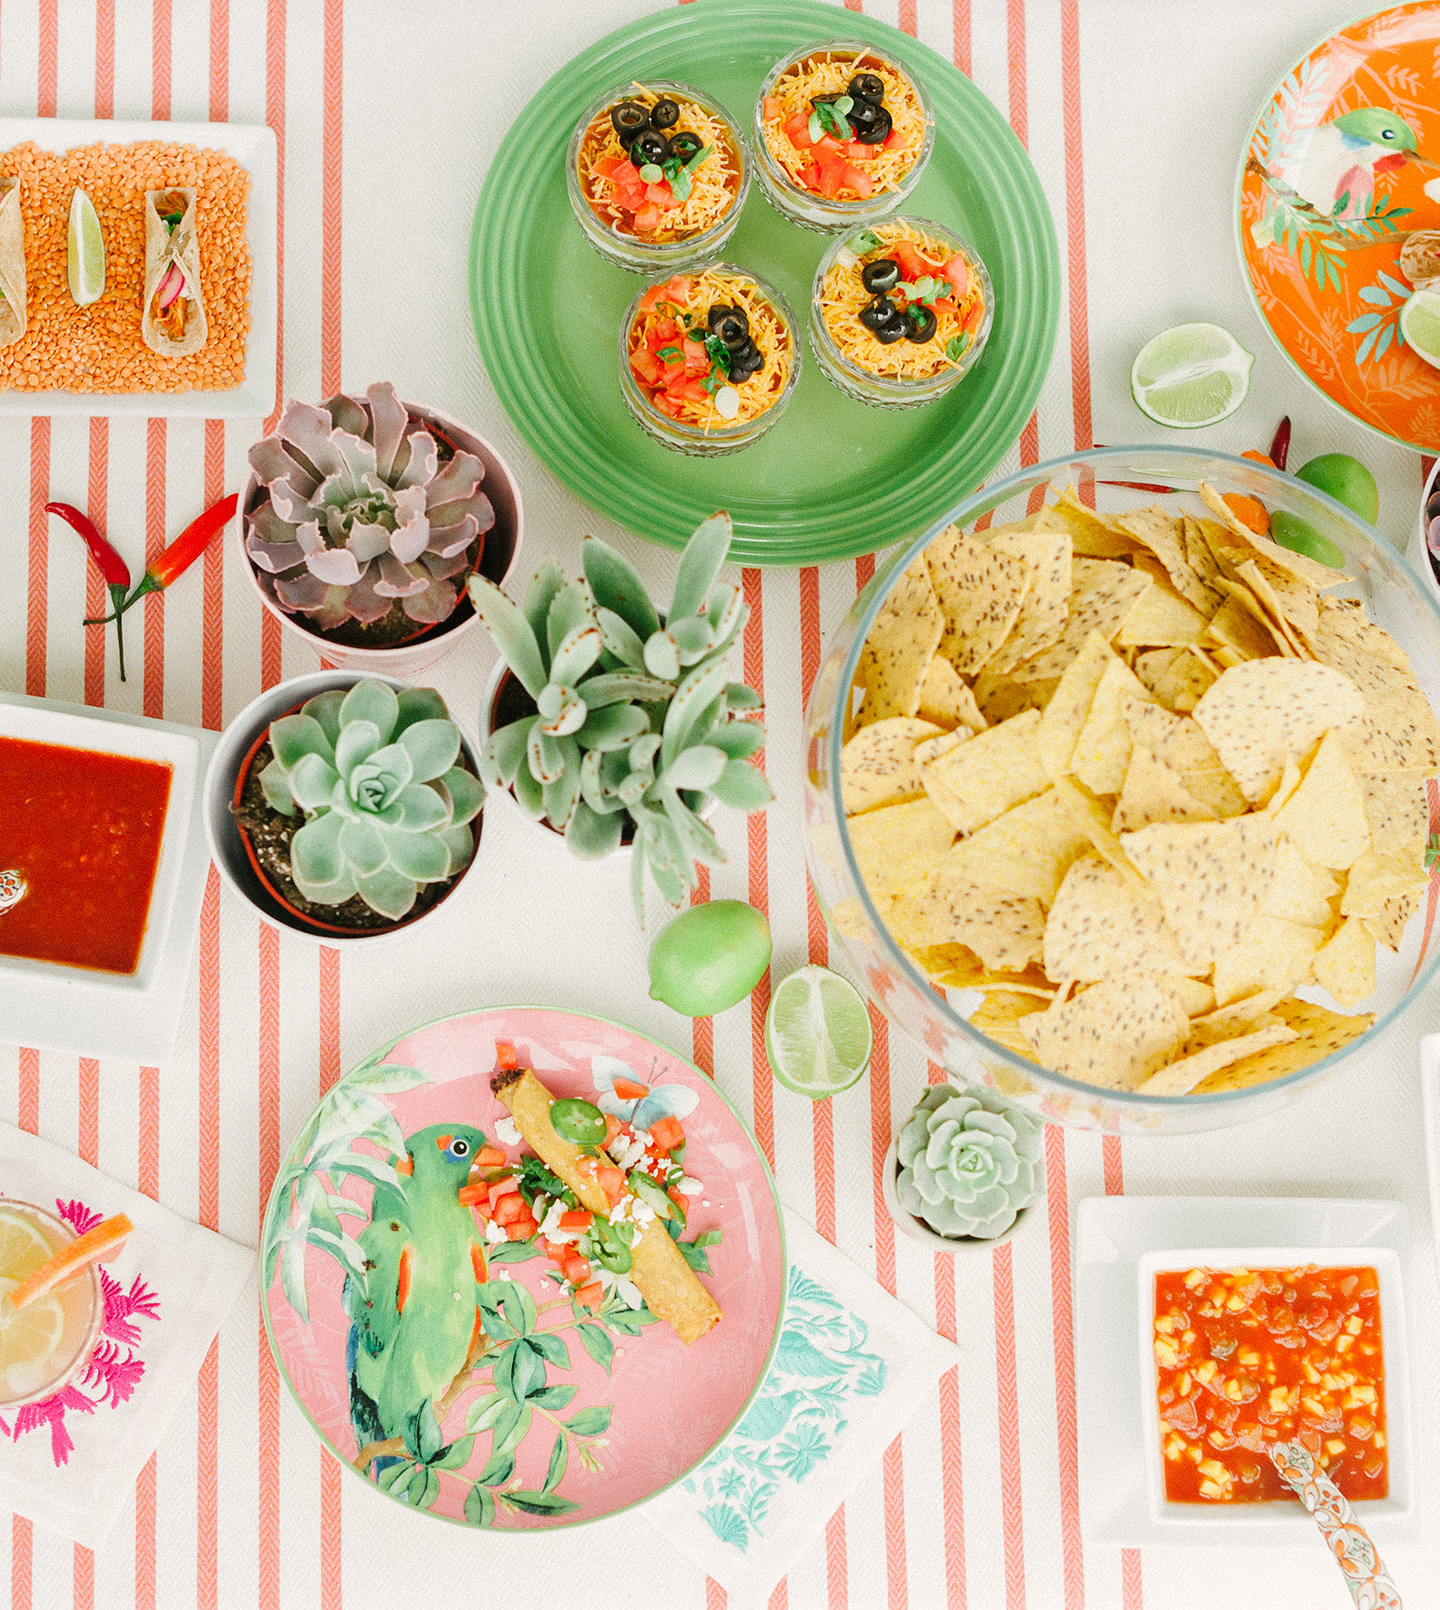 Cinco de Mayo Food Spread | COLOR by K